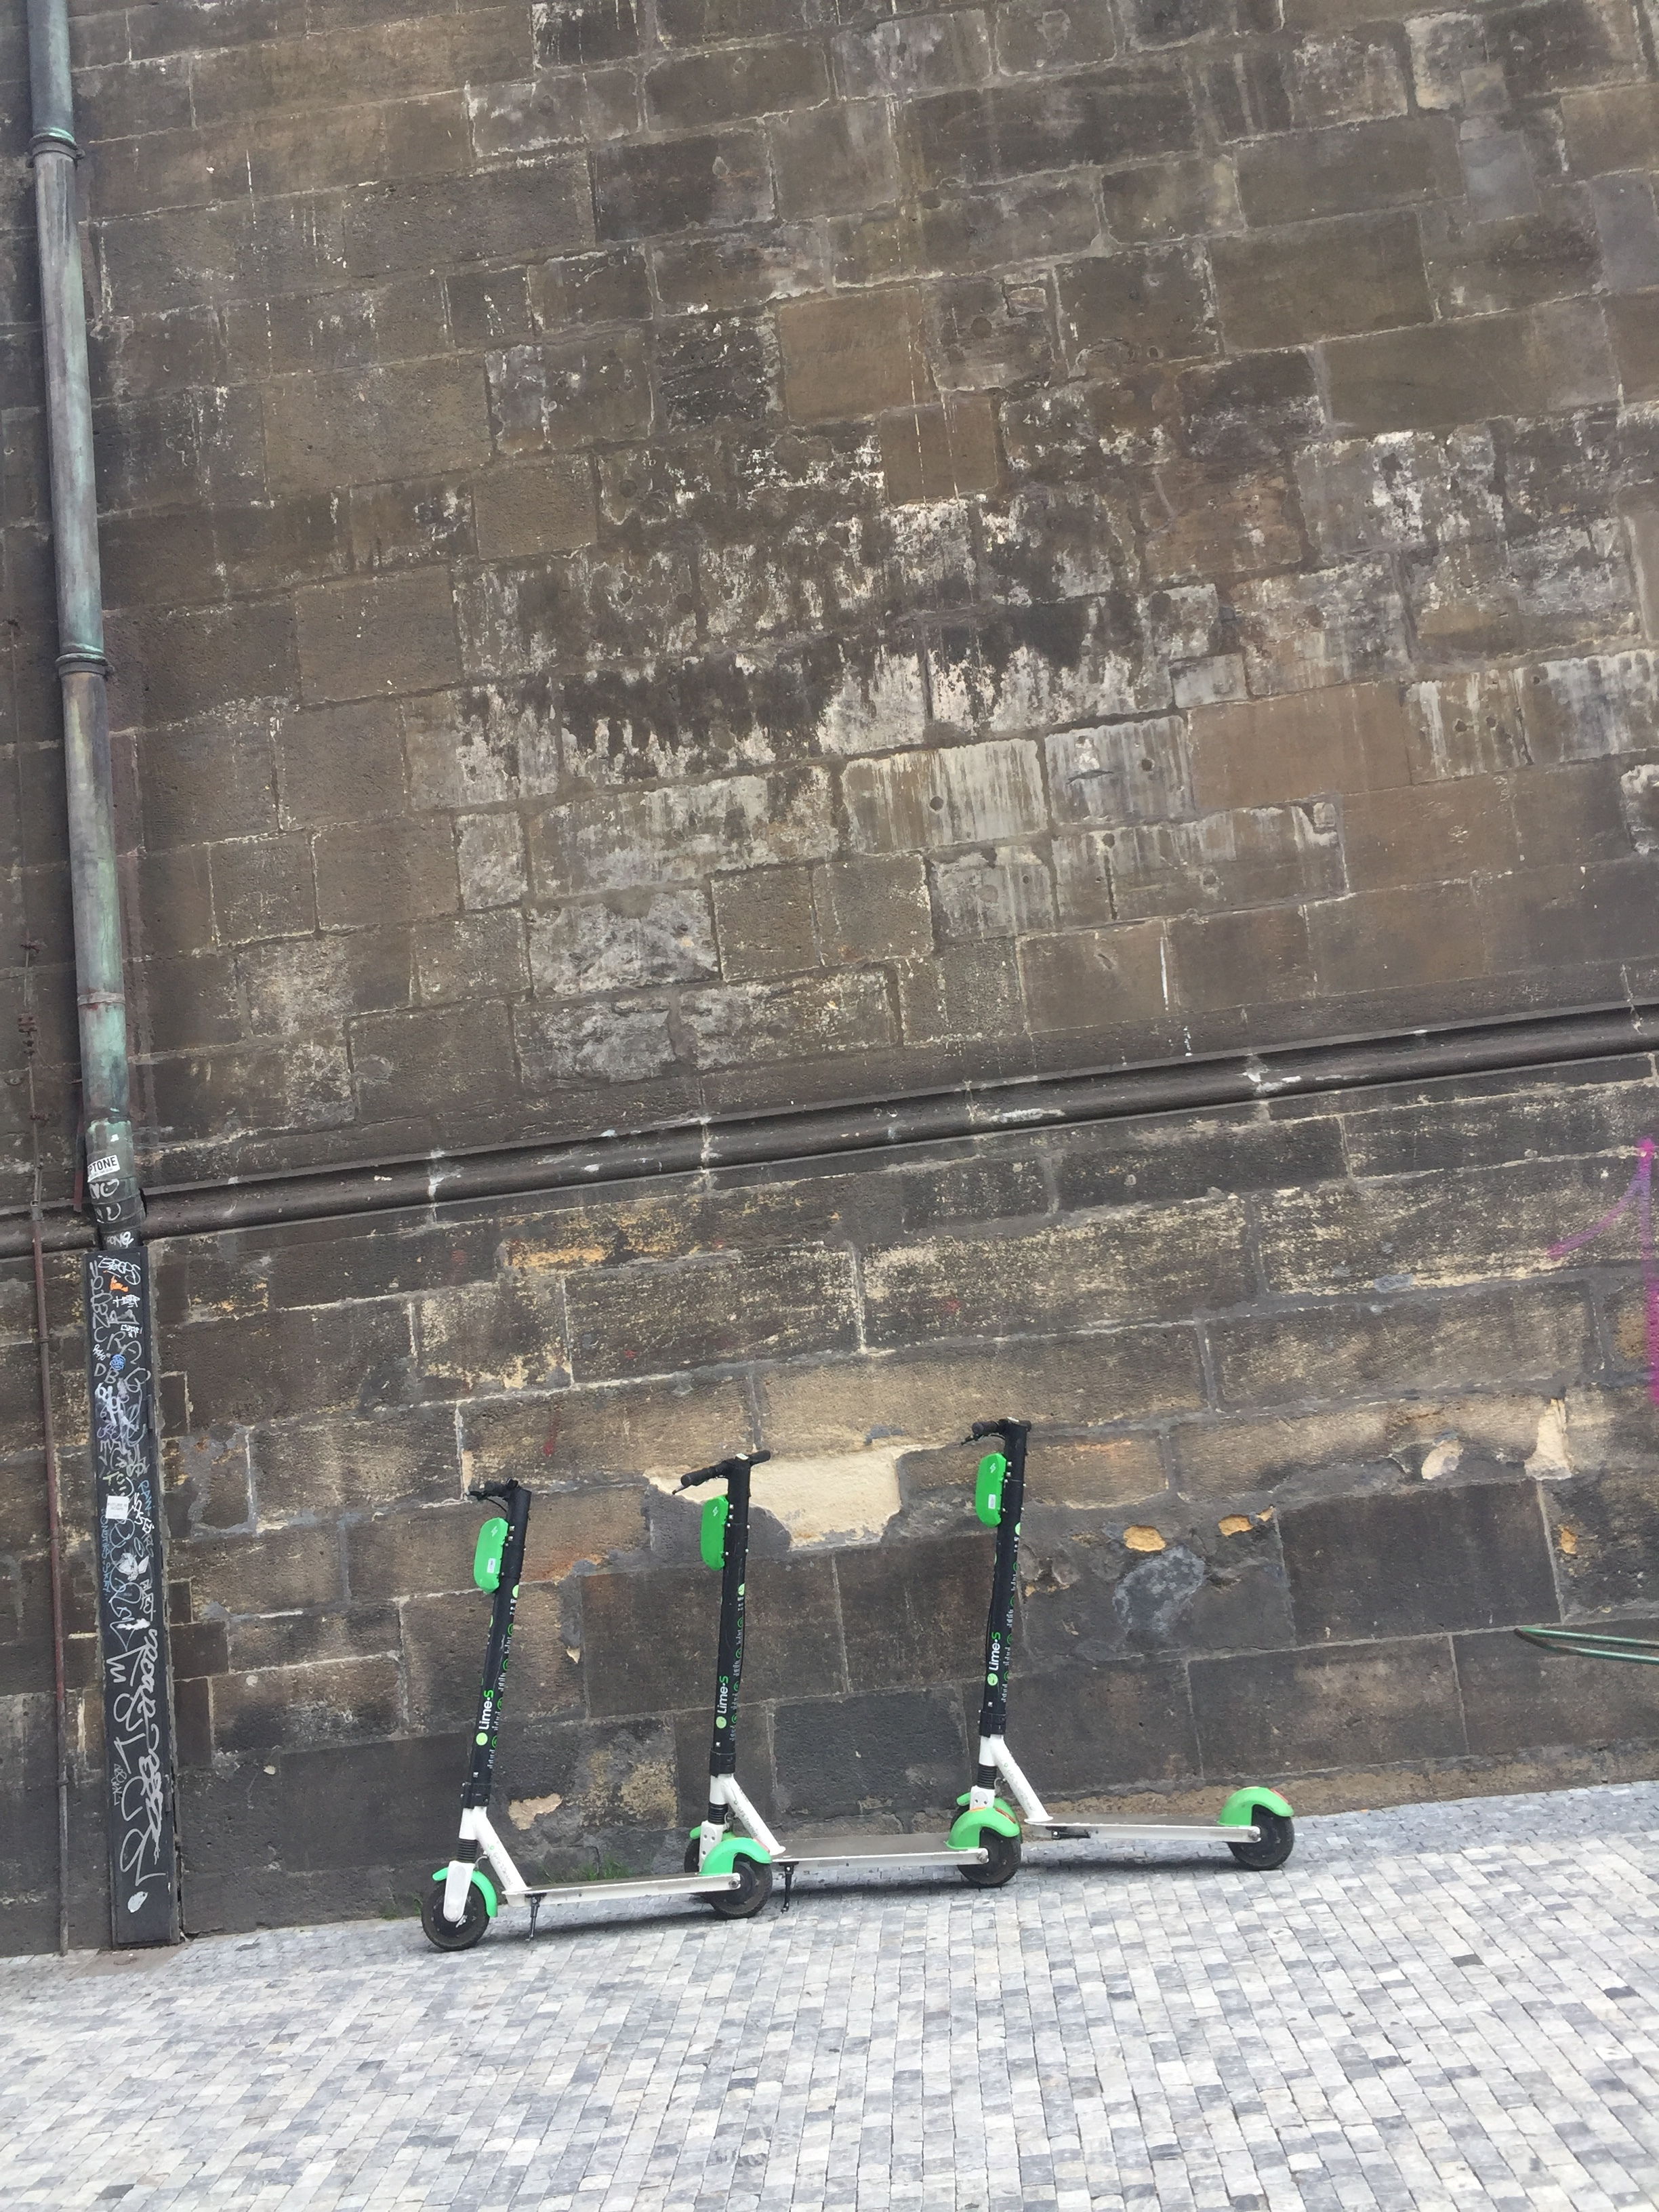 Lime enabled the pootling around Prague. (unsponsored)